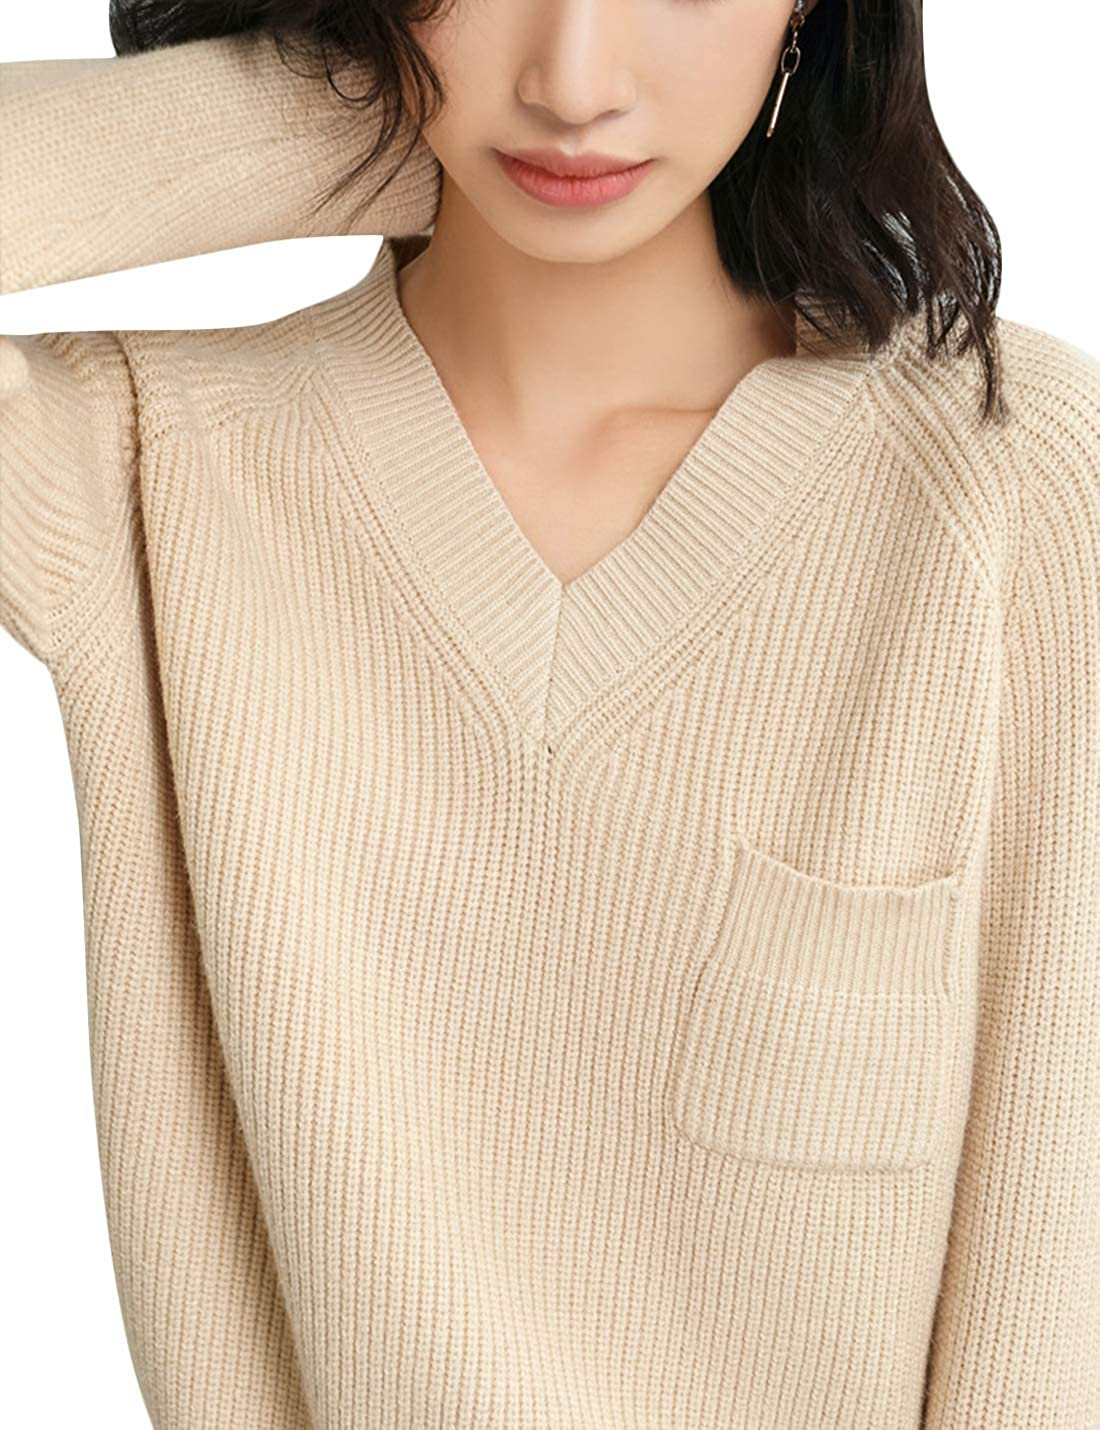 Springrain Women's Casual Warm V-Neck Knitted Sleeve Large special OFFicial site price Long Pullov